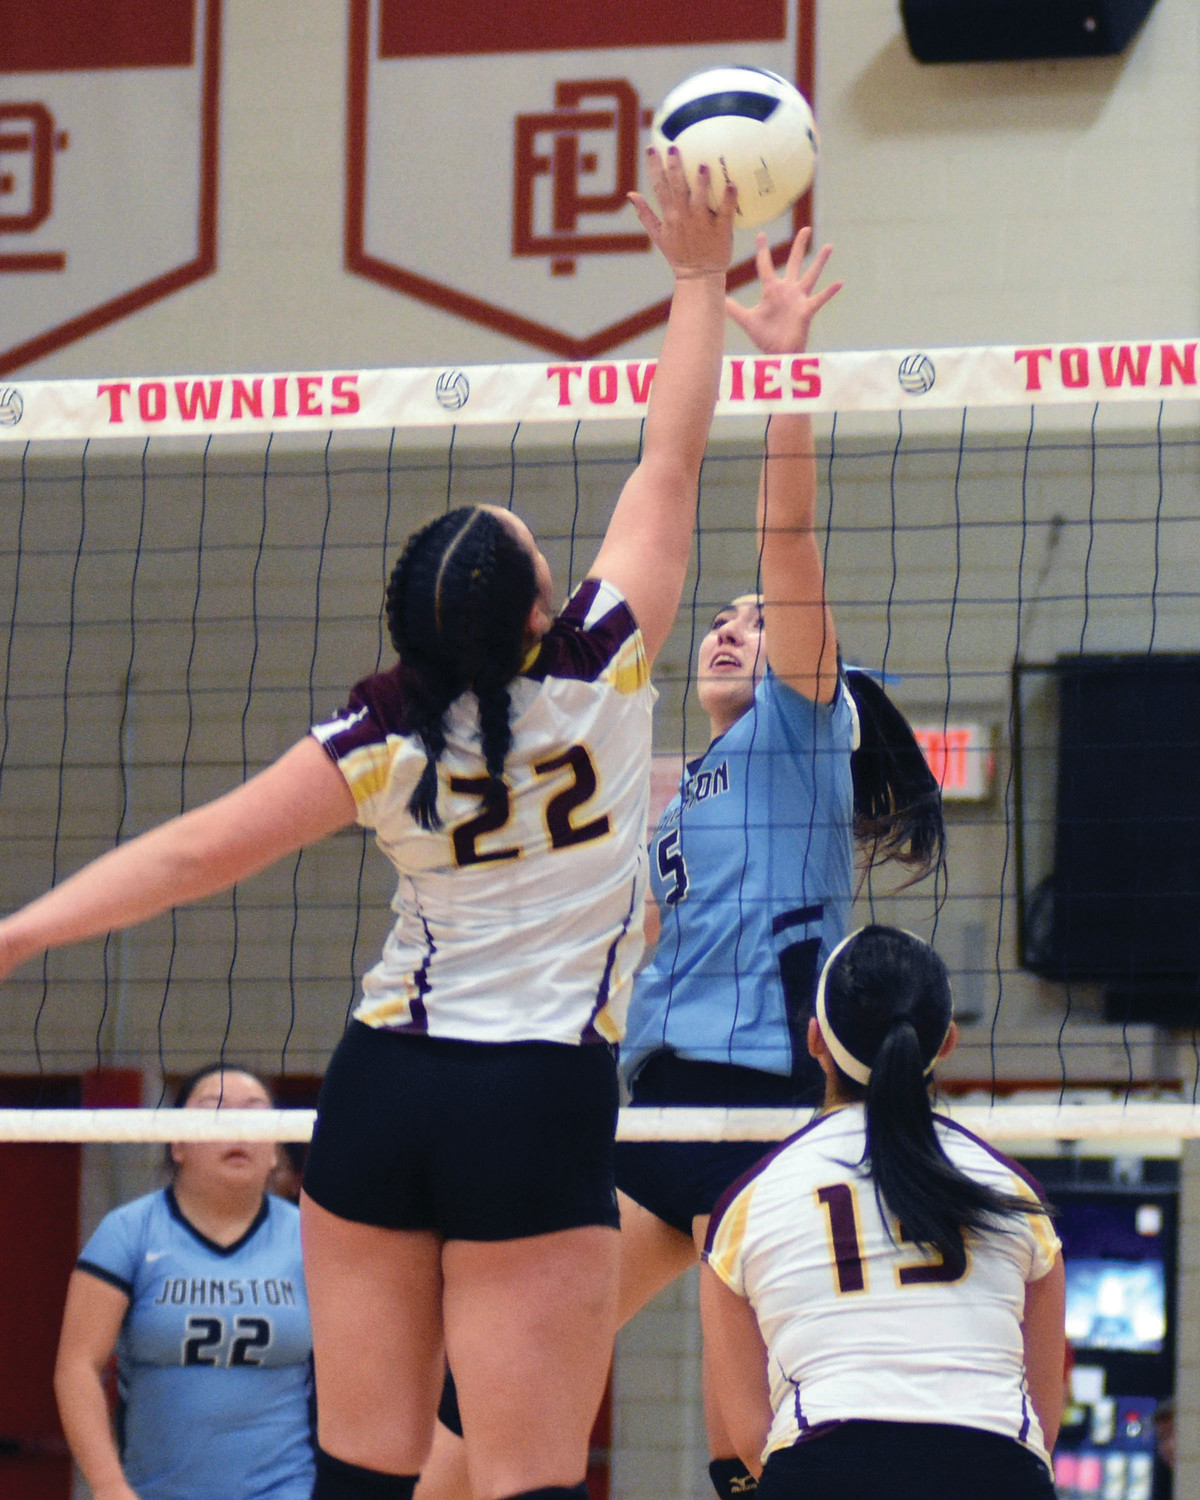 CHAMPIONSHIP MATCH: Johnston's Gabby DiRaimo tries to block a shot at the net.